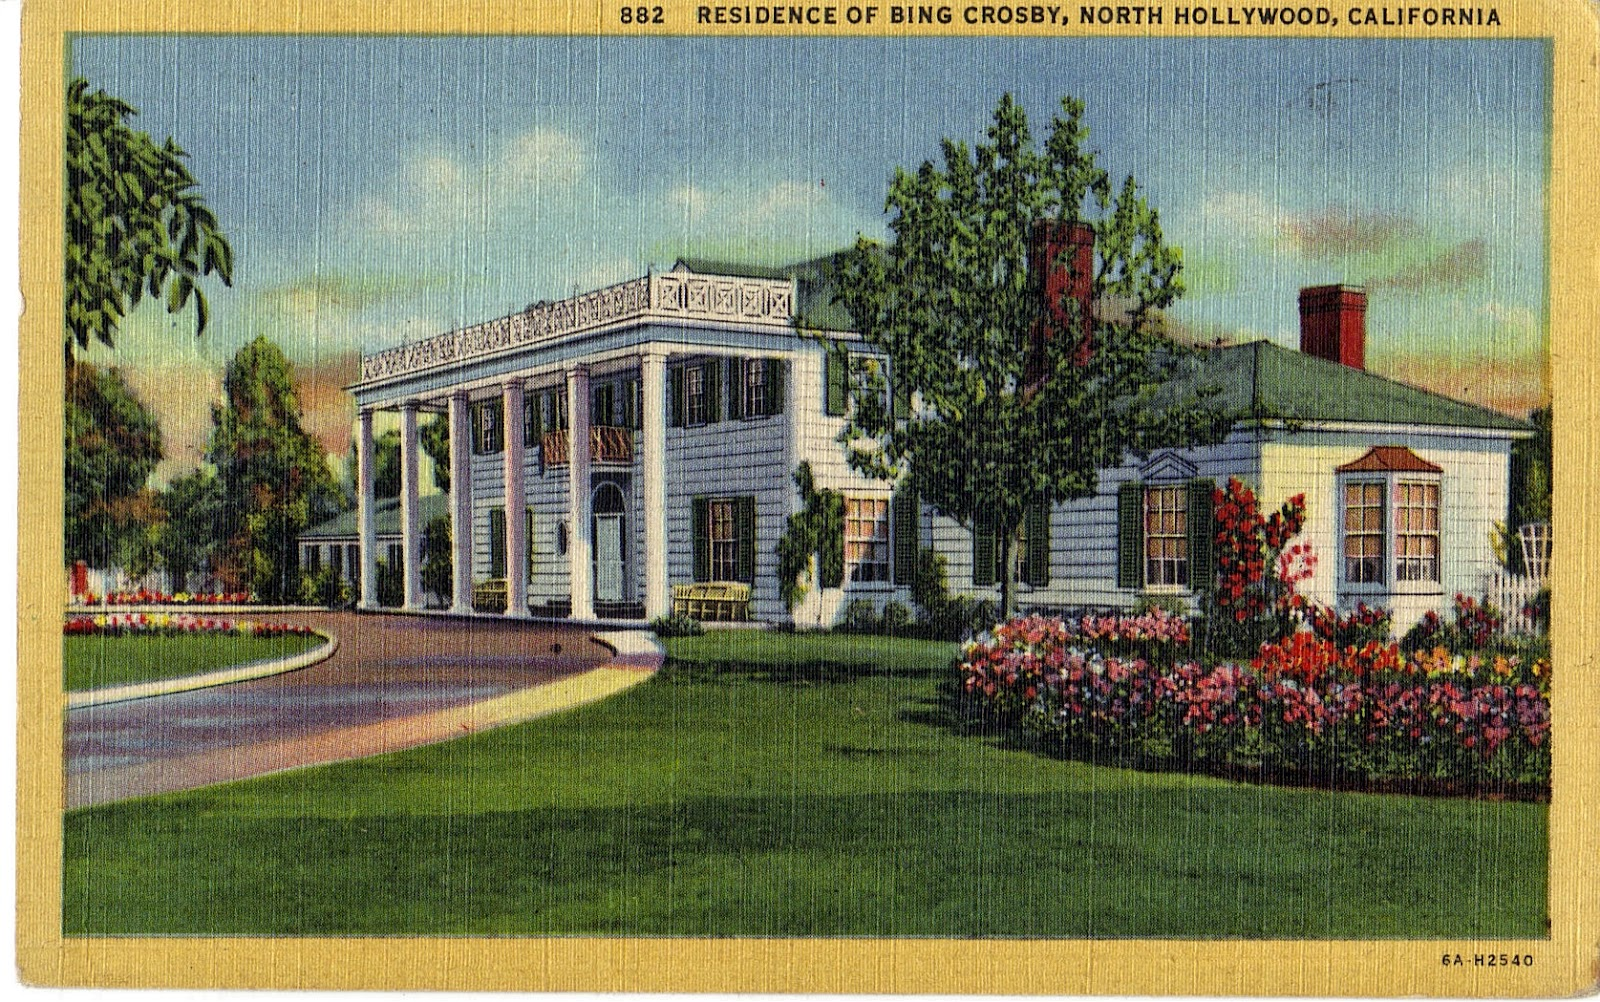 Bing crosby home in north hollywood postcard san for North valley homes